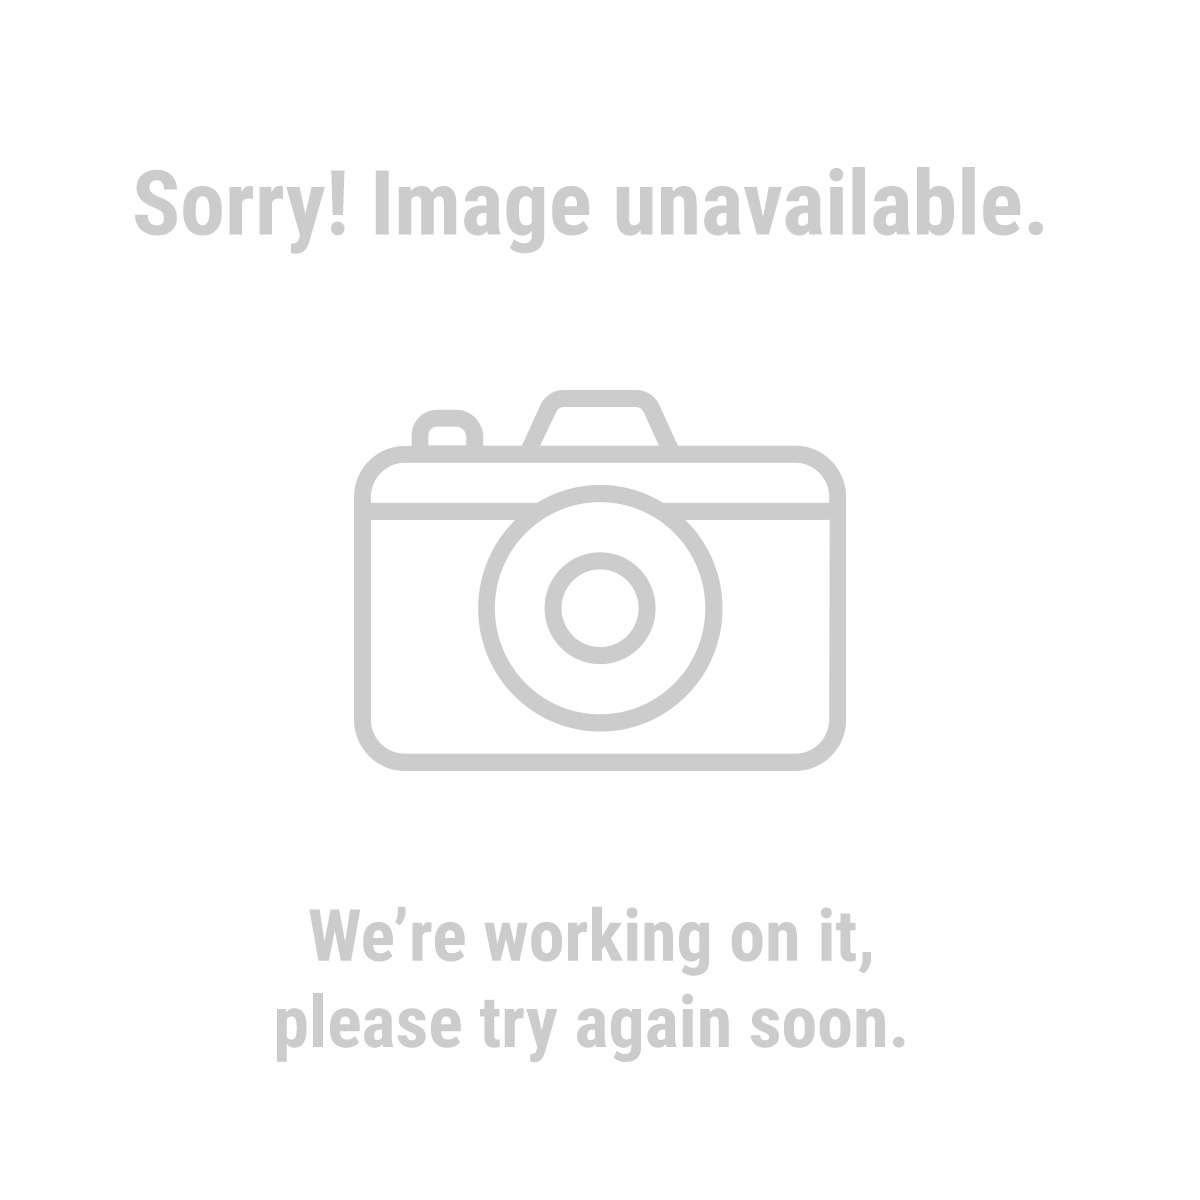 Western Safety 61366 Hard Cap Knee Pads